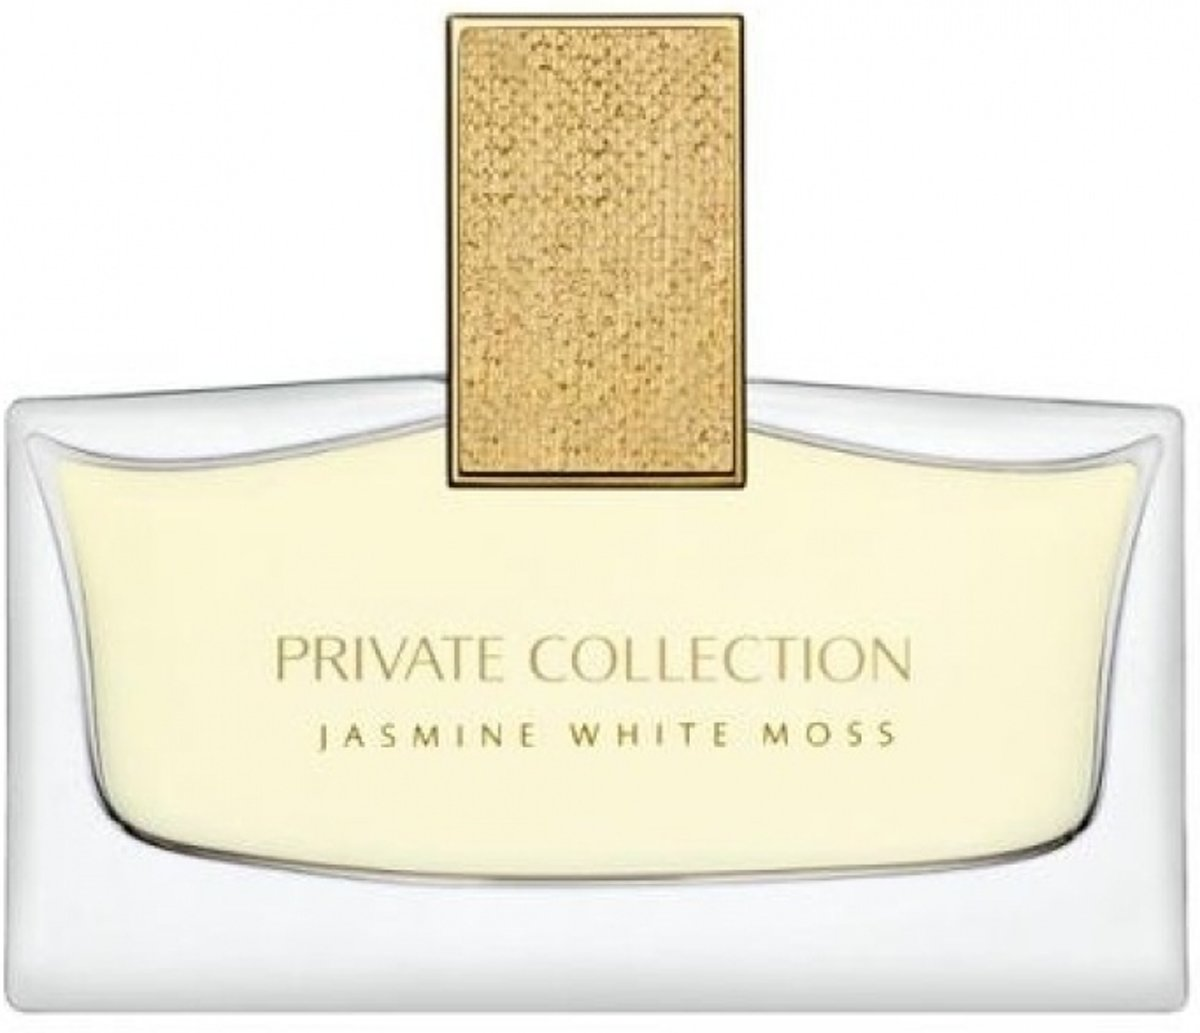 Estée Lauder Private Collection Jasmine White Moss Parfum 30 ml